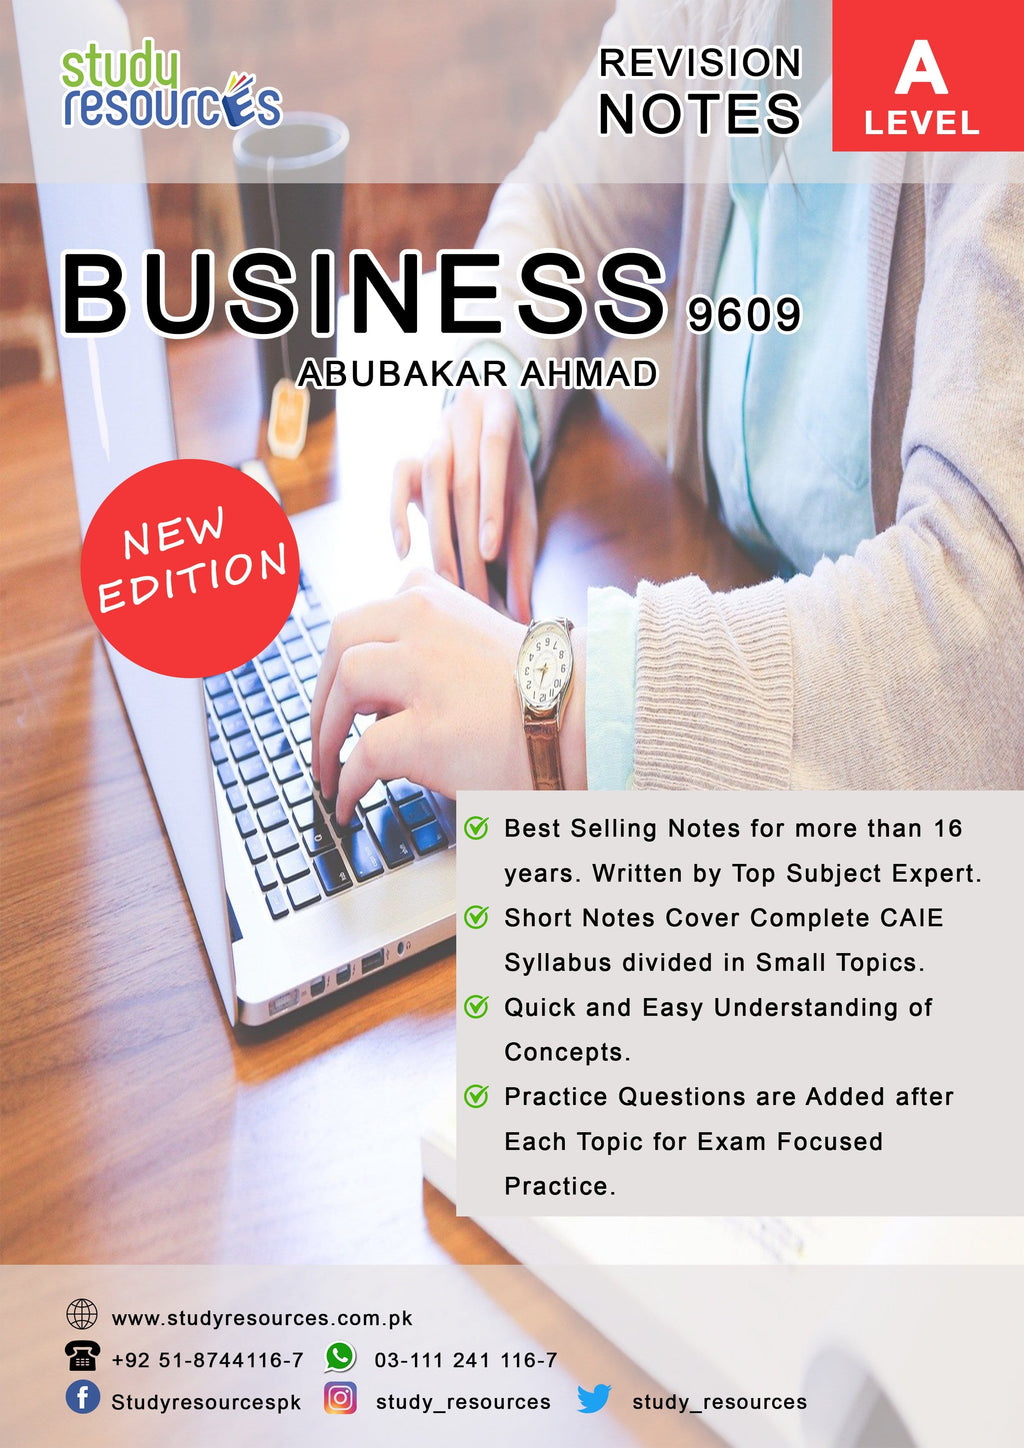 Cambridge A-Level Business (9609) Revision Guide by Sir. Abubakar Ahmad